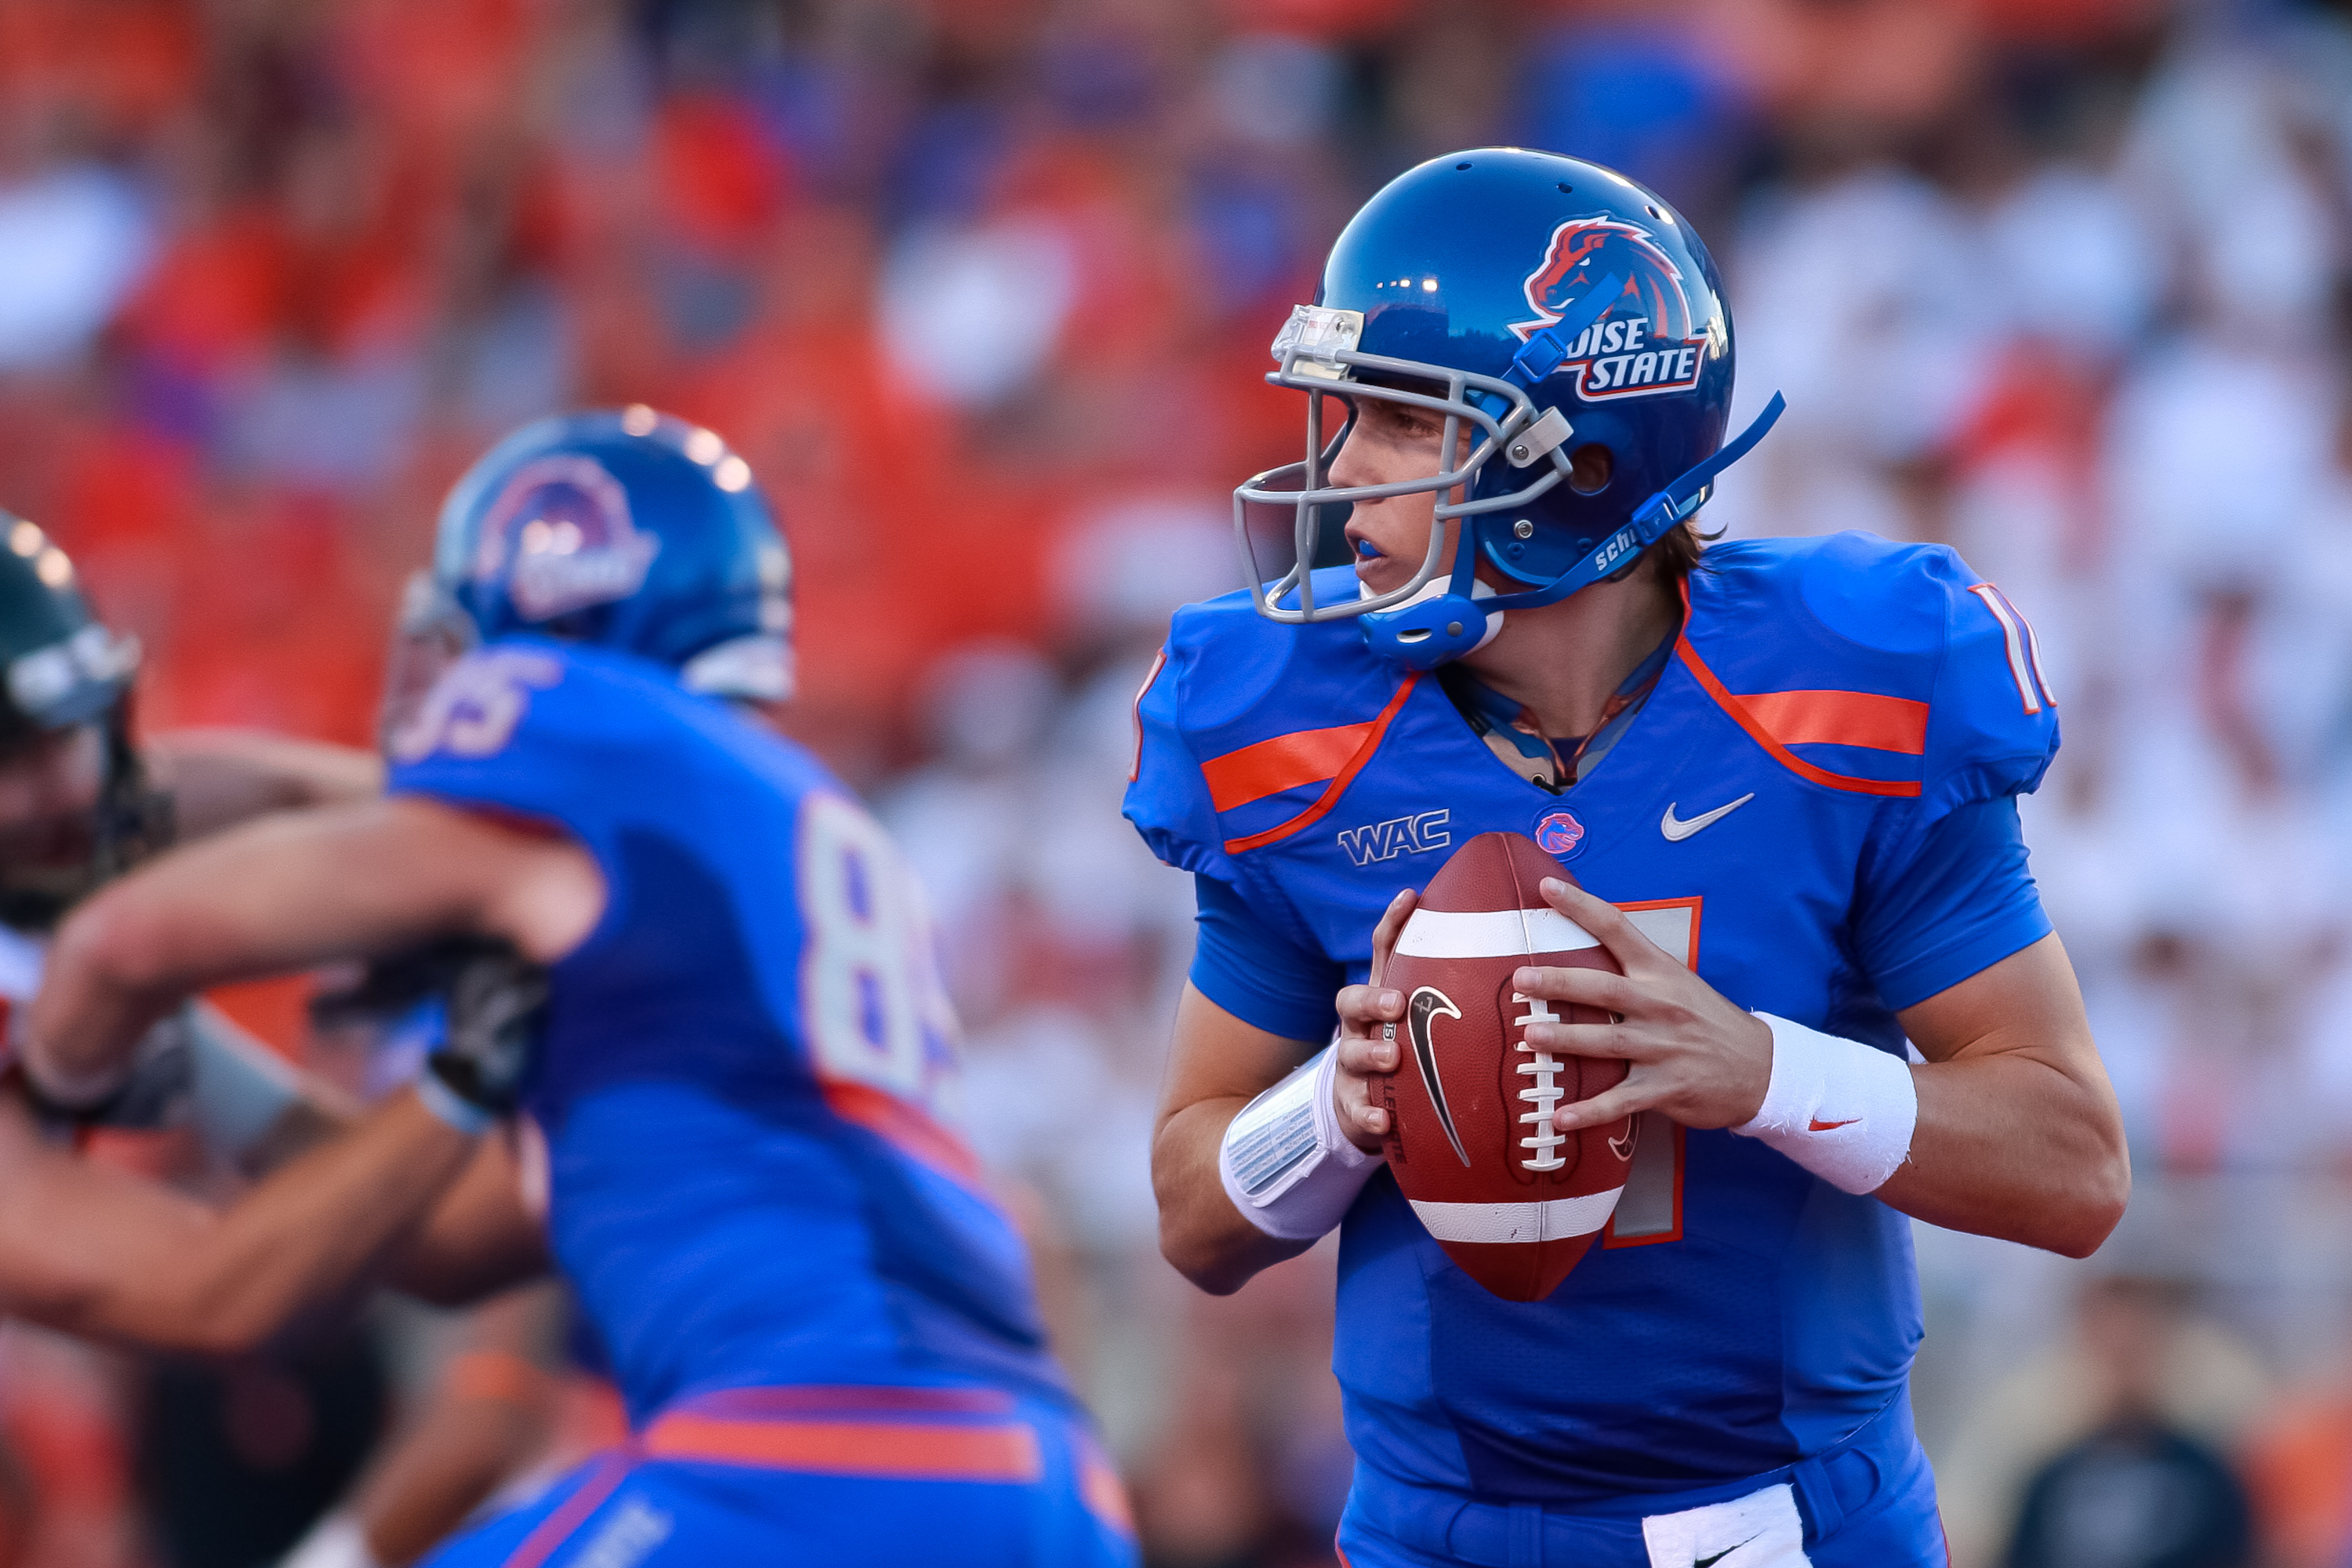 BOISE, ID - SEPTEMBER 25:  Quarterback Kellen Moore #11 of the Boise State Broncos looks for a receiver against the Oregon State Beaversat Bronco Stadium on September 25, 2010 in Boise, Idaho.  (Photo by Otto Kitsinger III/Getty Images)